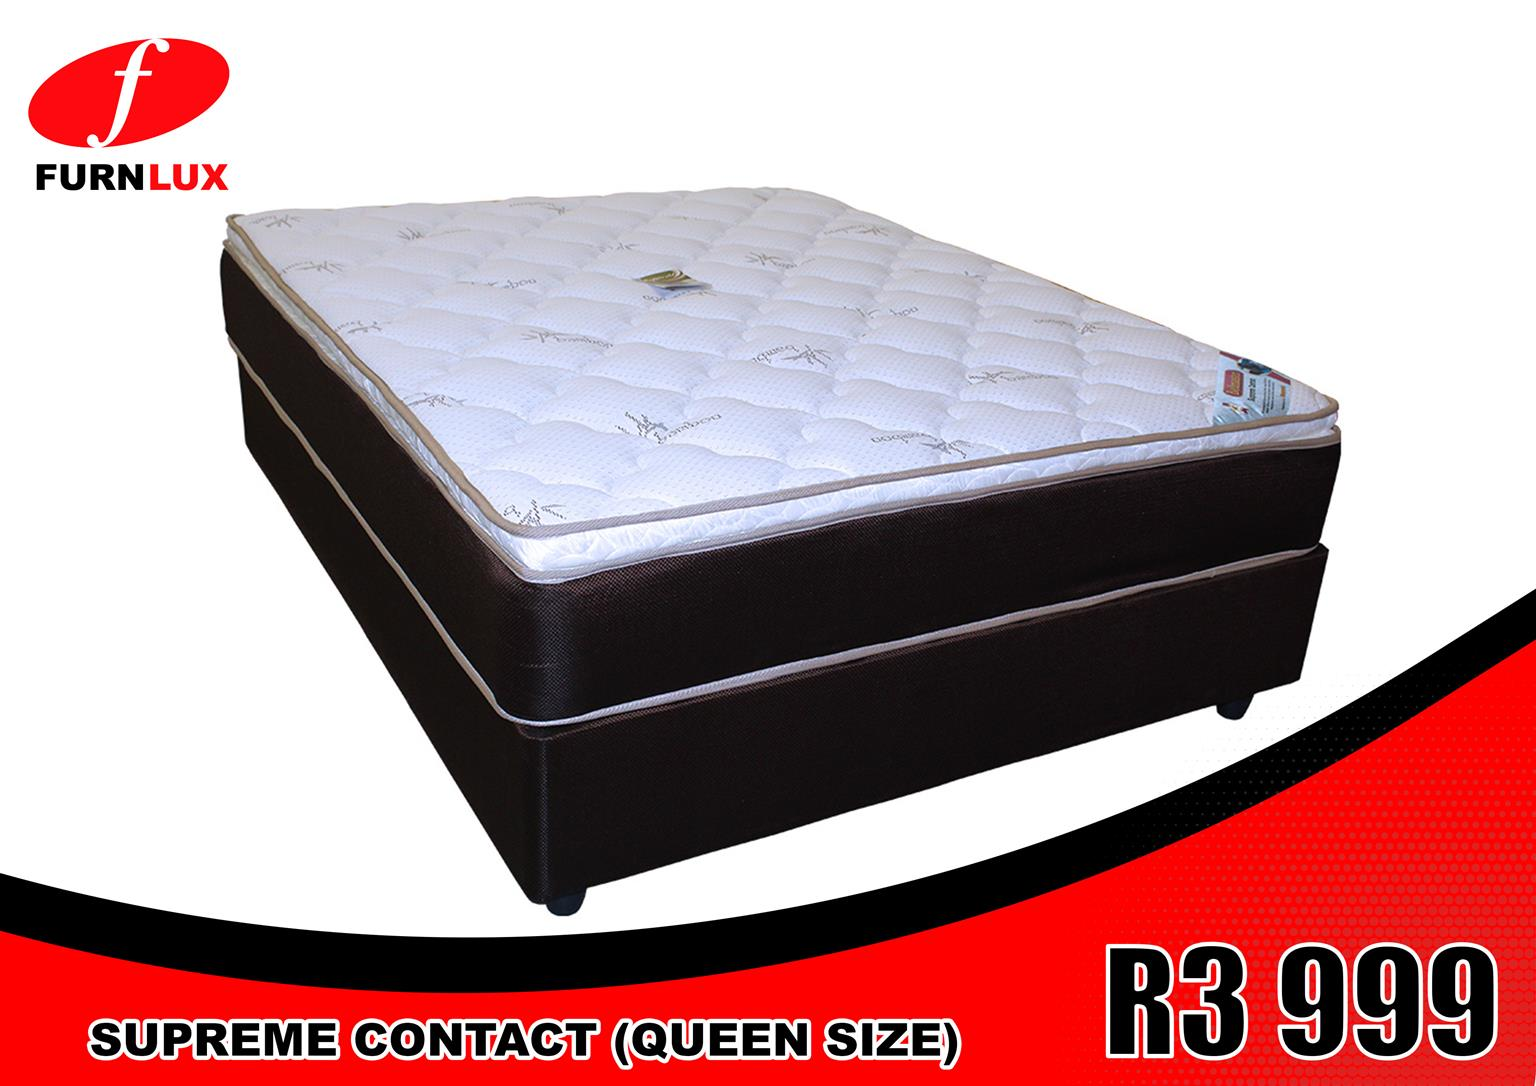 MATTRESS AND BASE BRAND NEW SUPREME CONTACT